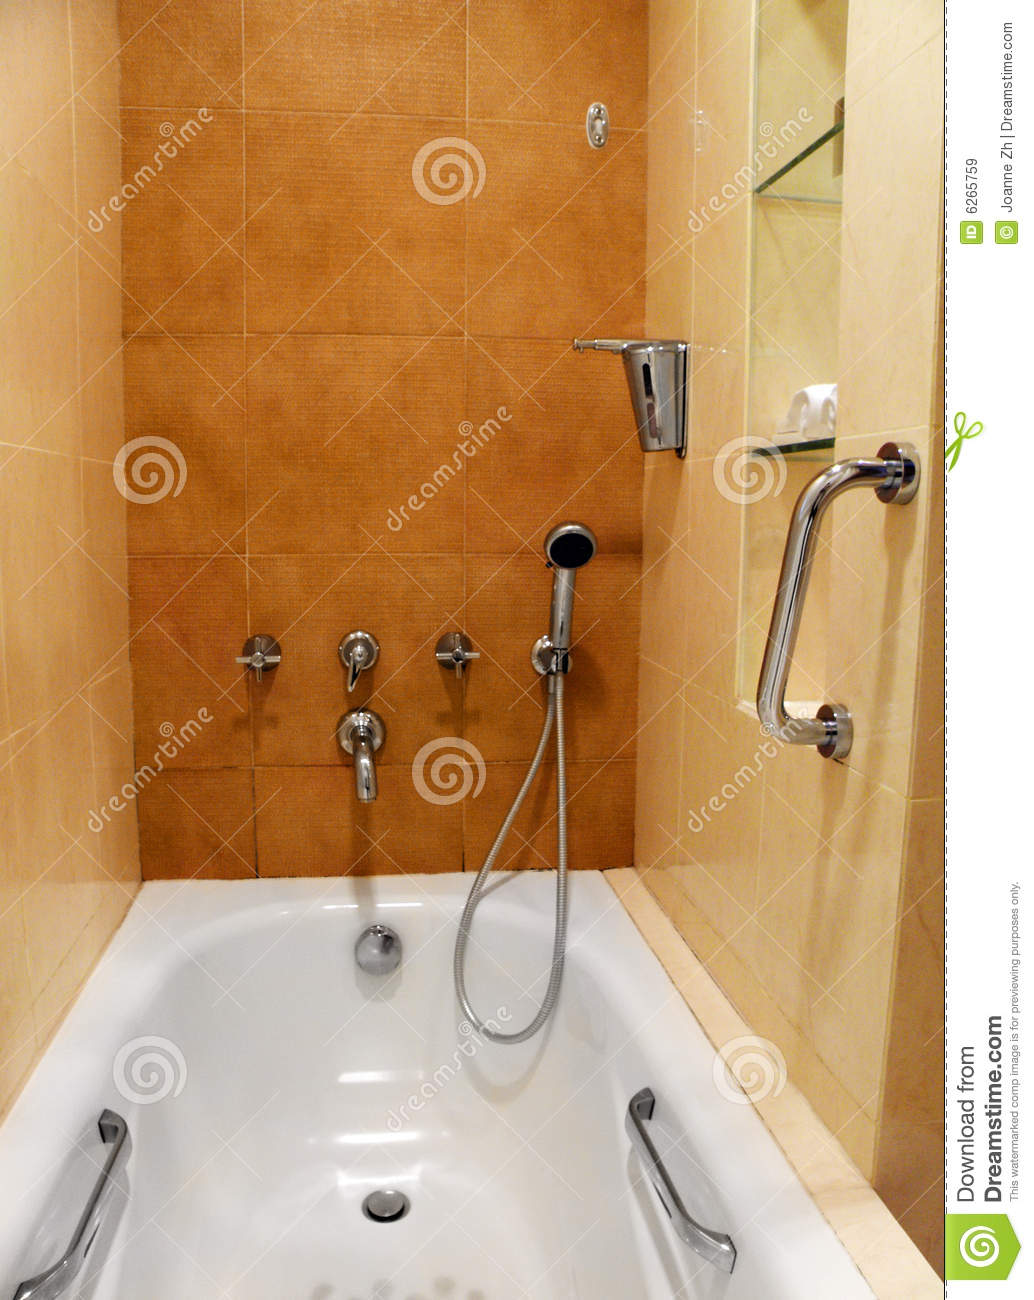 Bathroom Taps And Fittings Royalty Free Stock Images